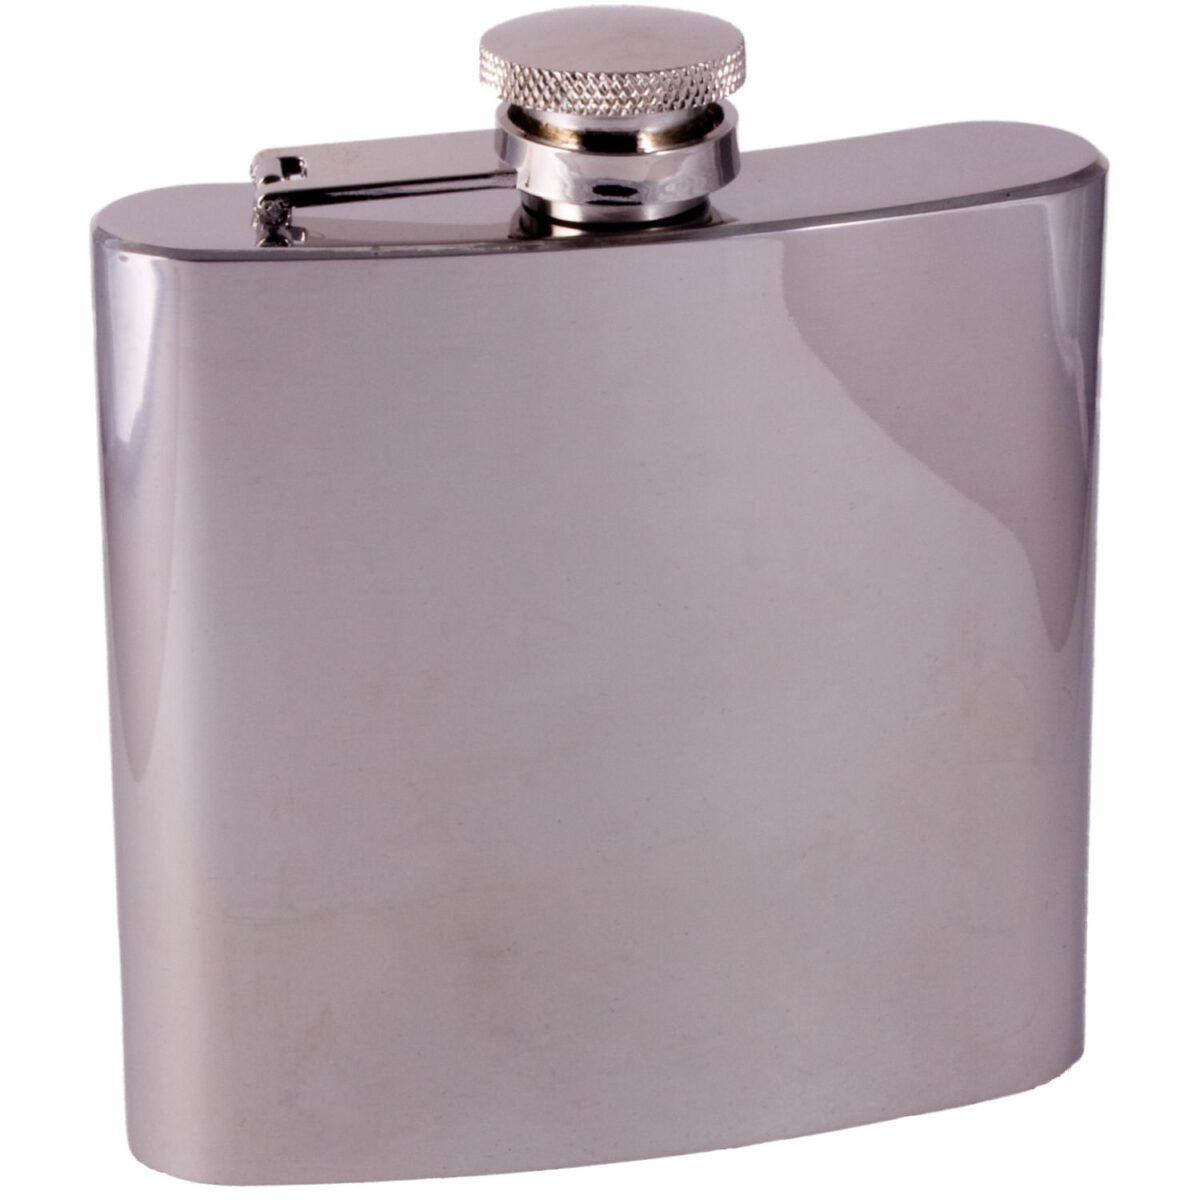 Artamis hip flask